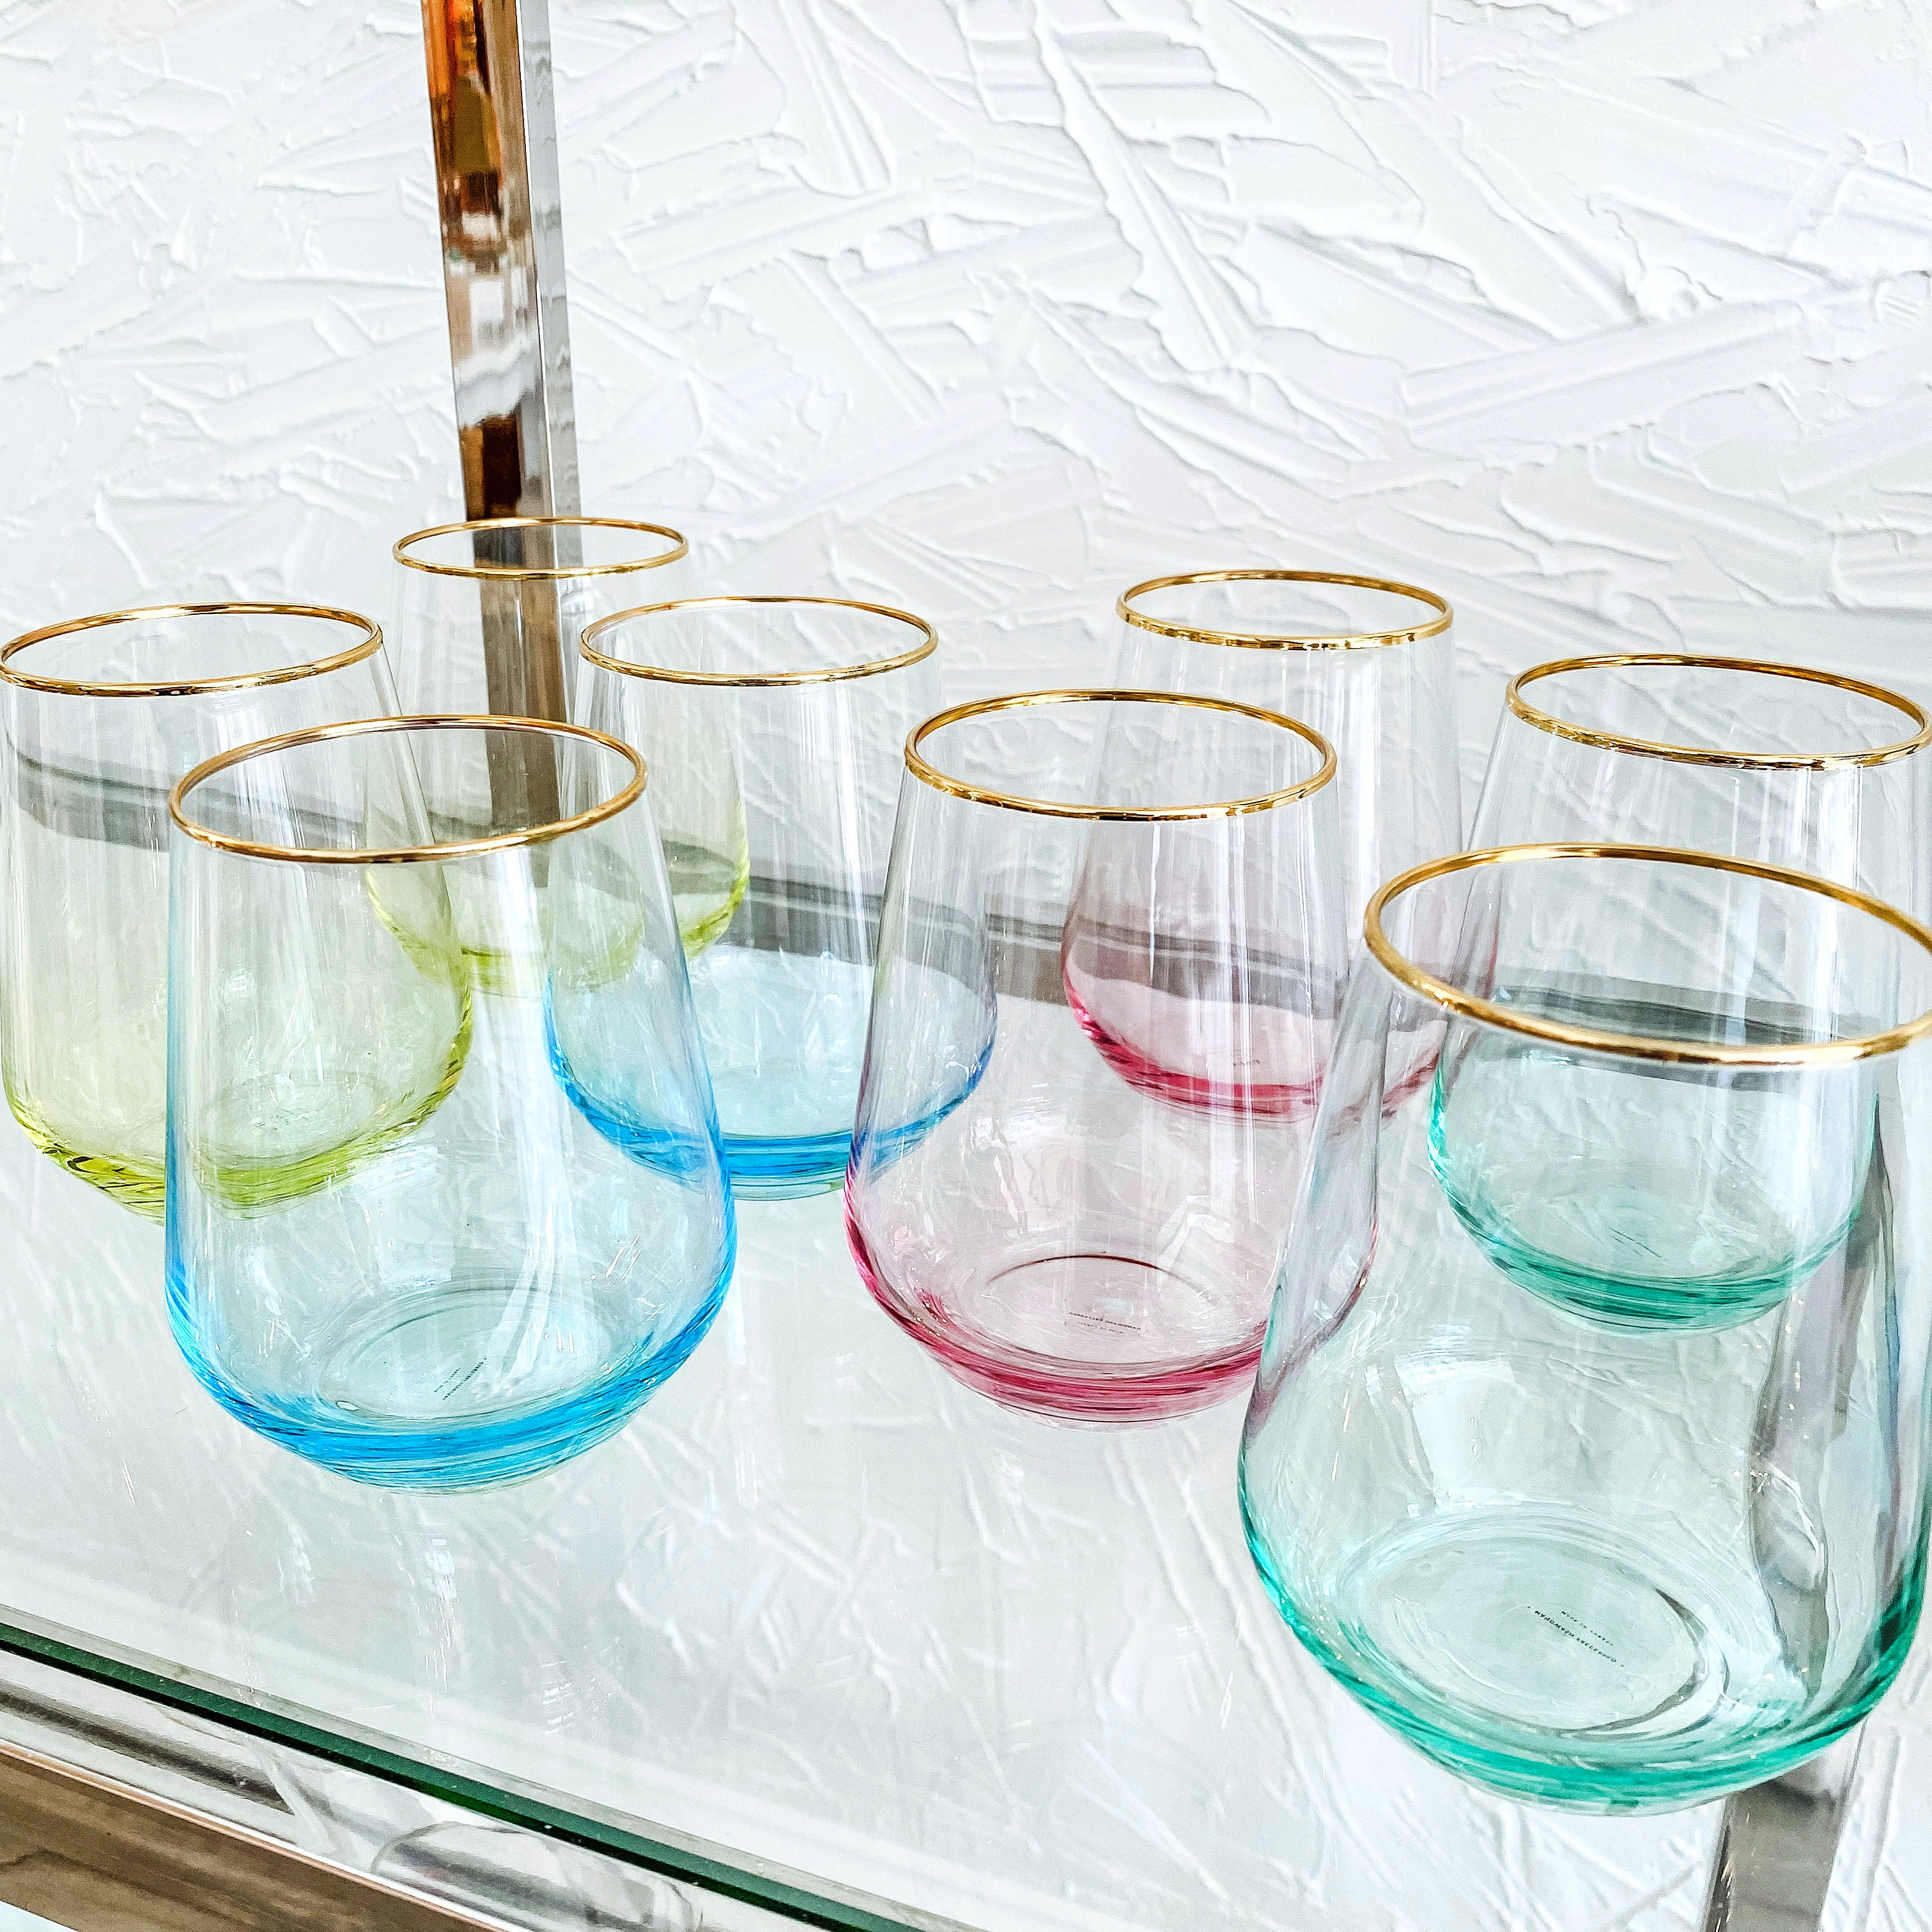 Special Order- 4 Blush Glasses